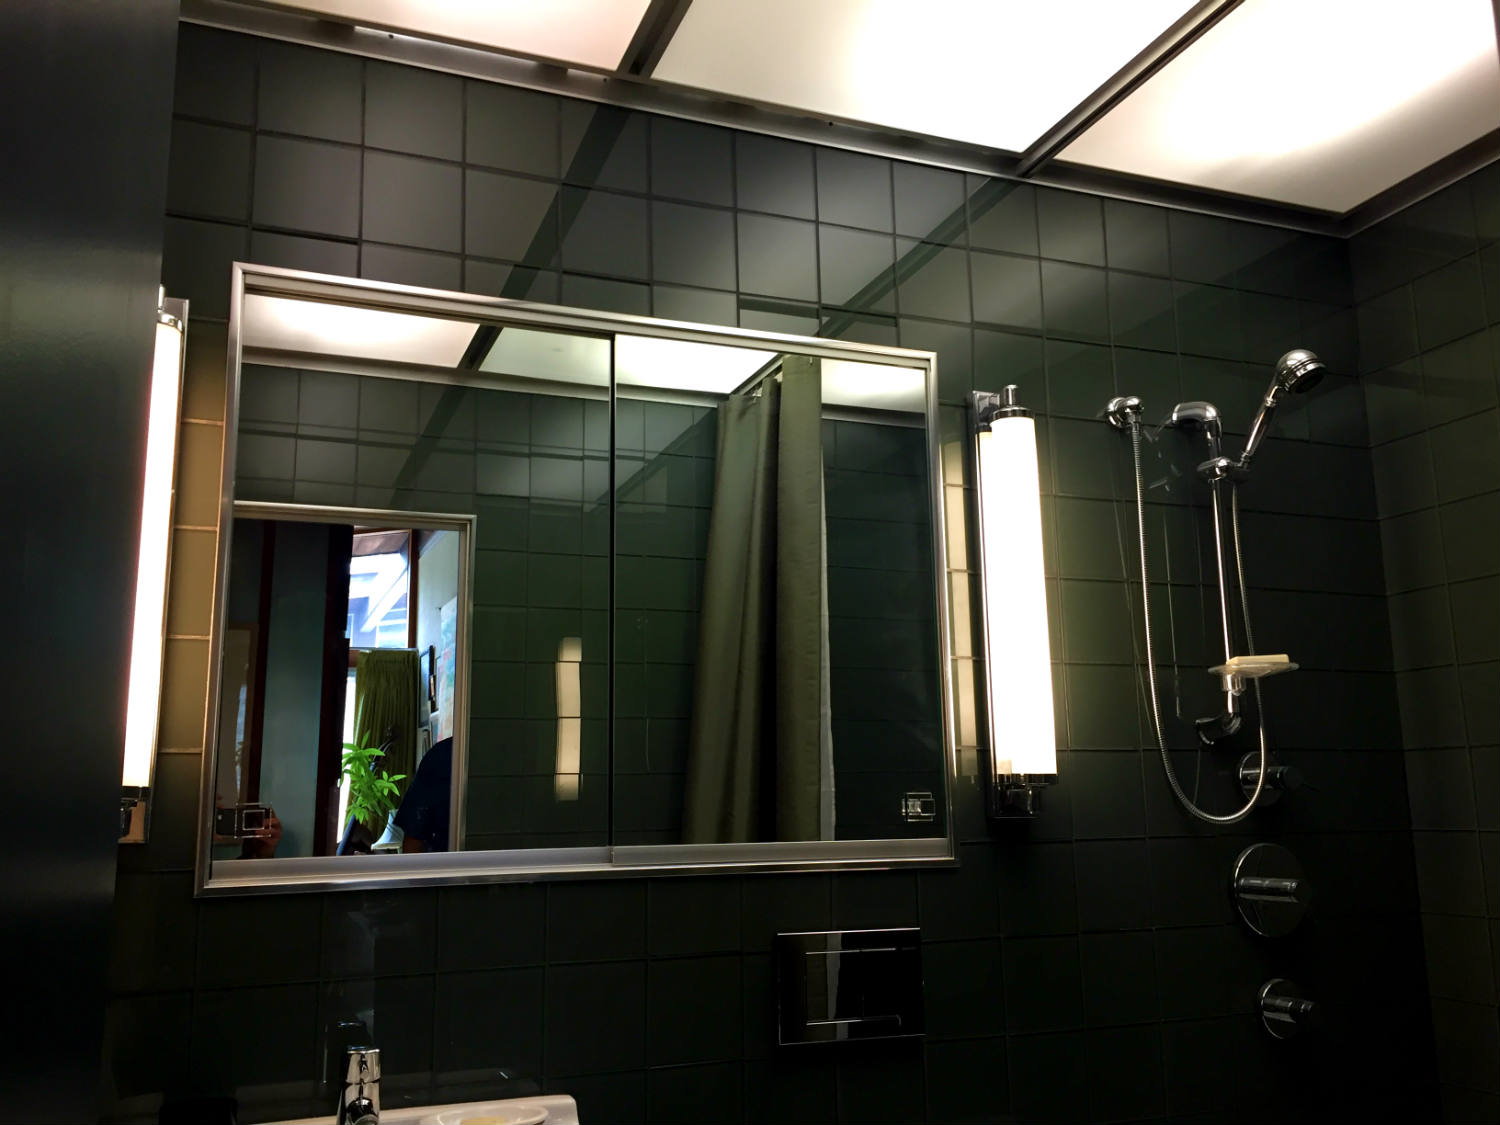 Bathroom 2 in Alcoa Care Free Home in Rochester, New York